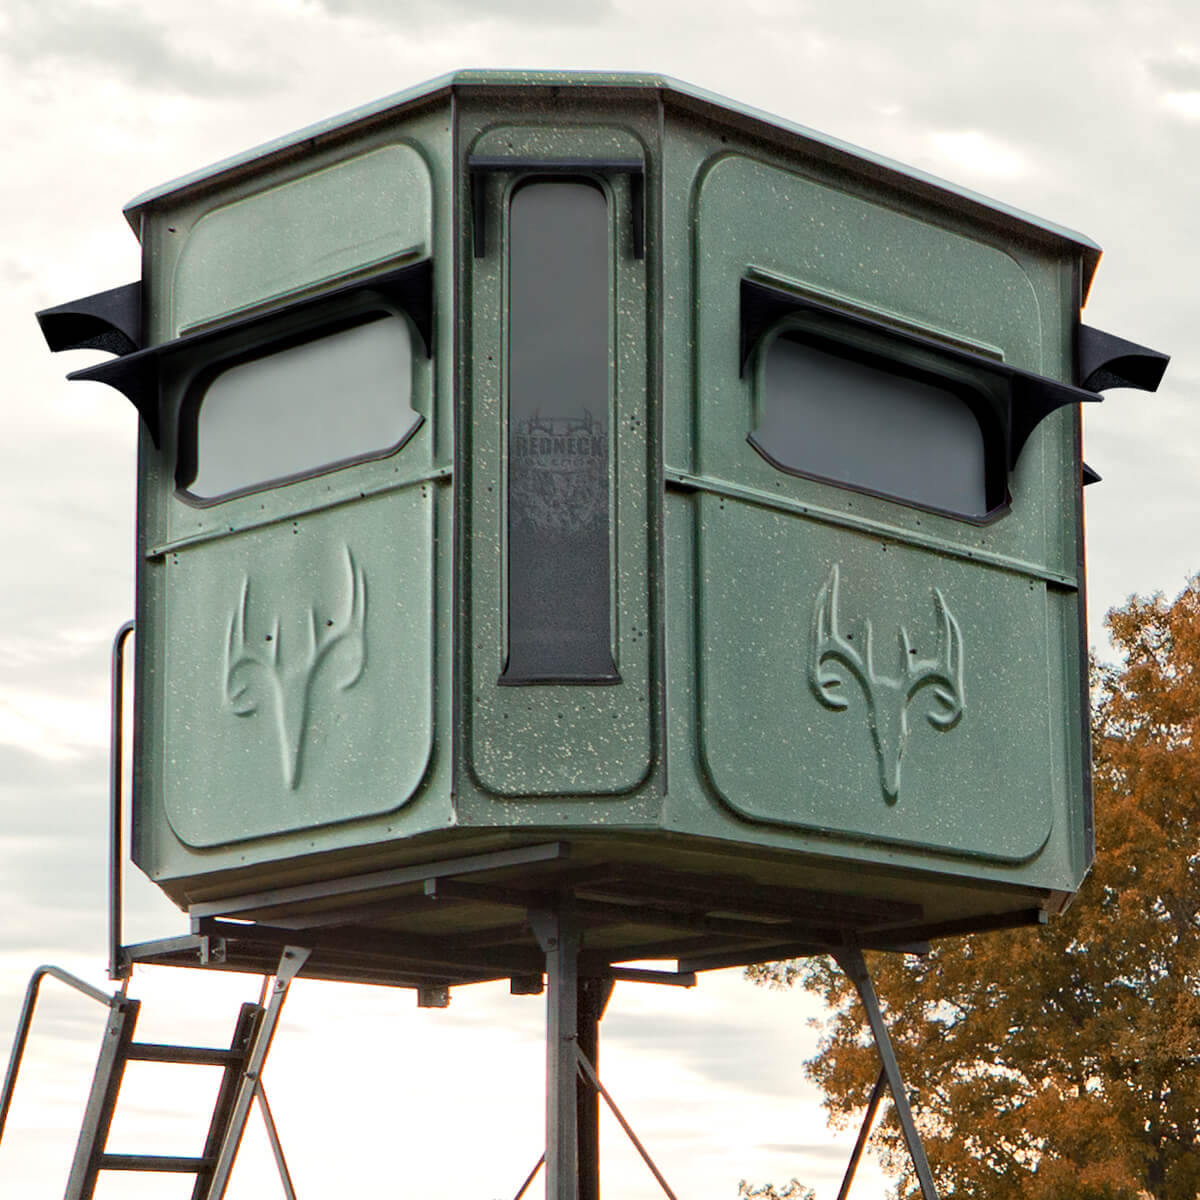 Hunting Blinds, Box Blinds and Deer Blinds for Sale